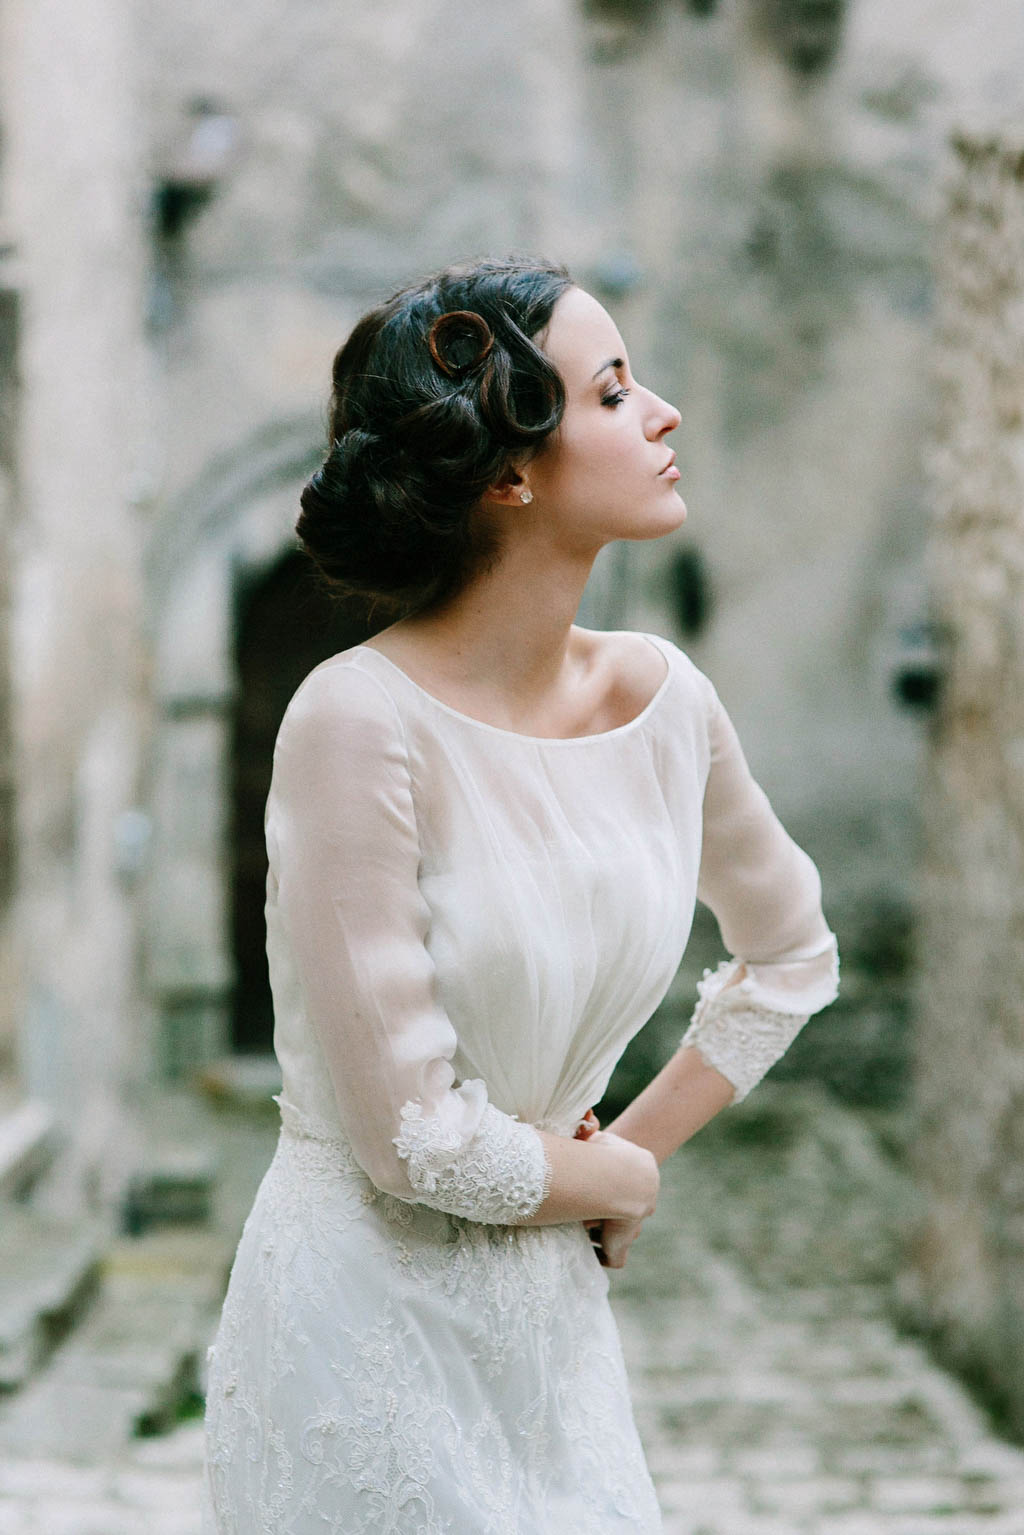 Vintage Italian Film Inspired Bridal Shoot Junebug Weddings